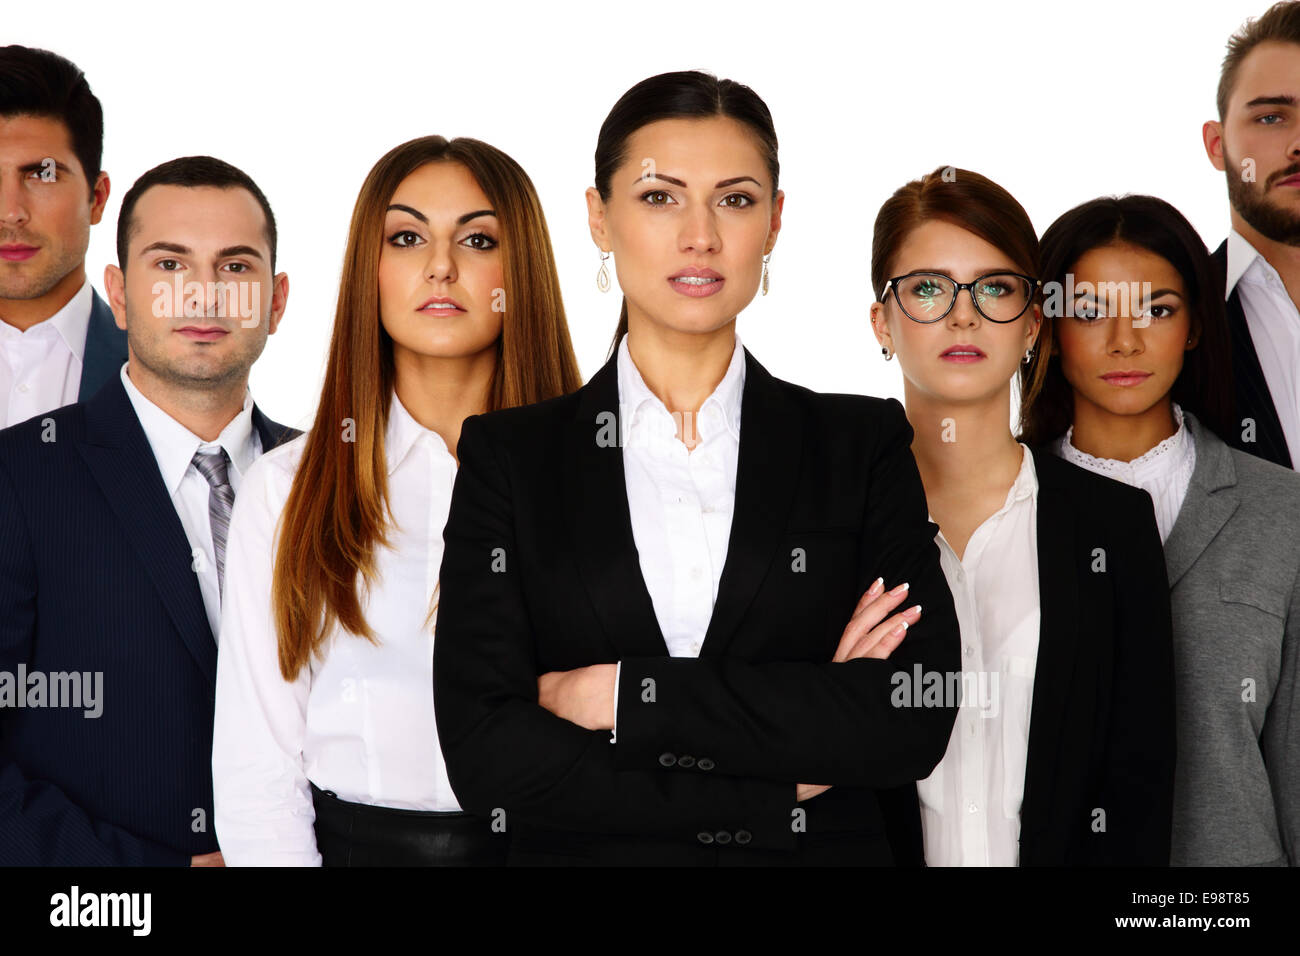 Woman leading her team over white background - Stock Image